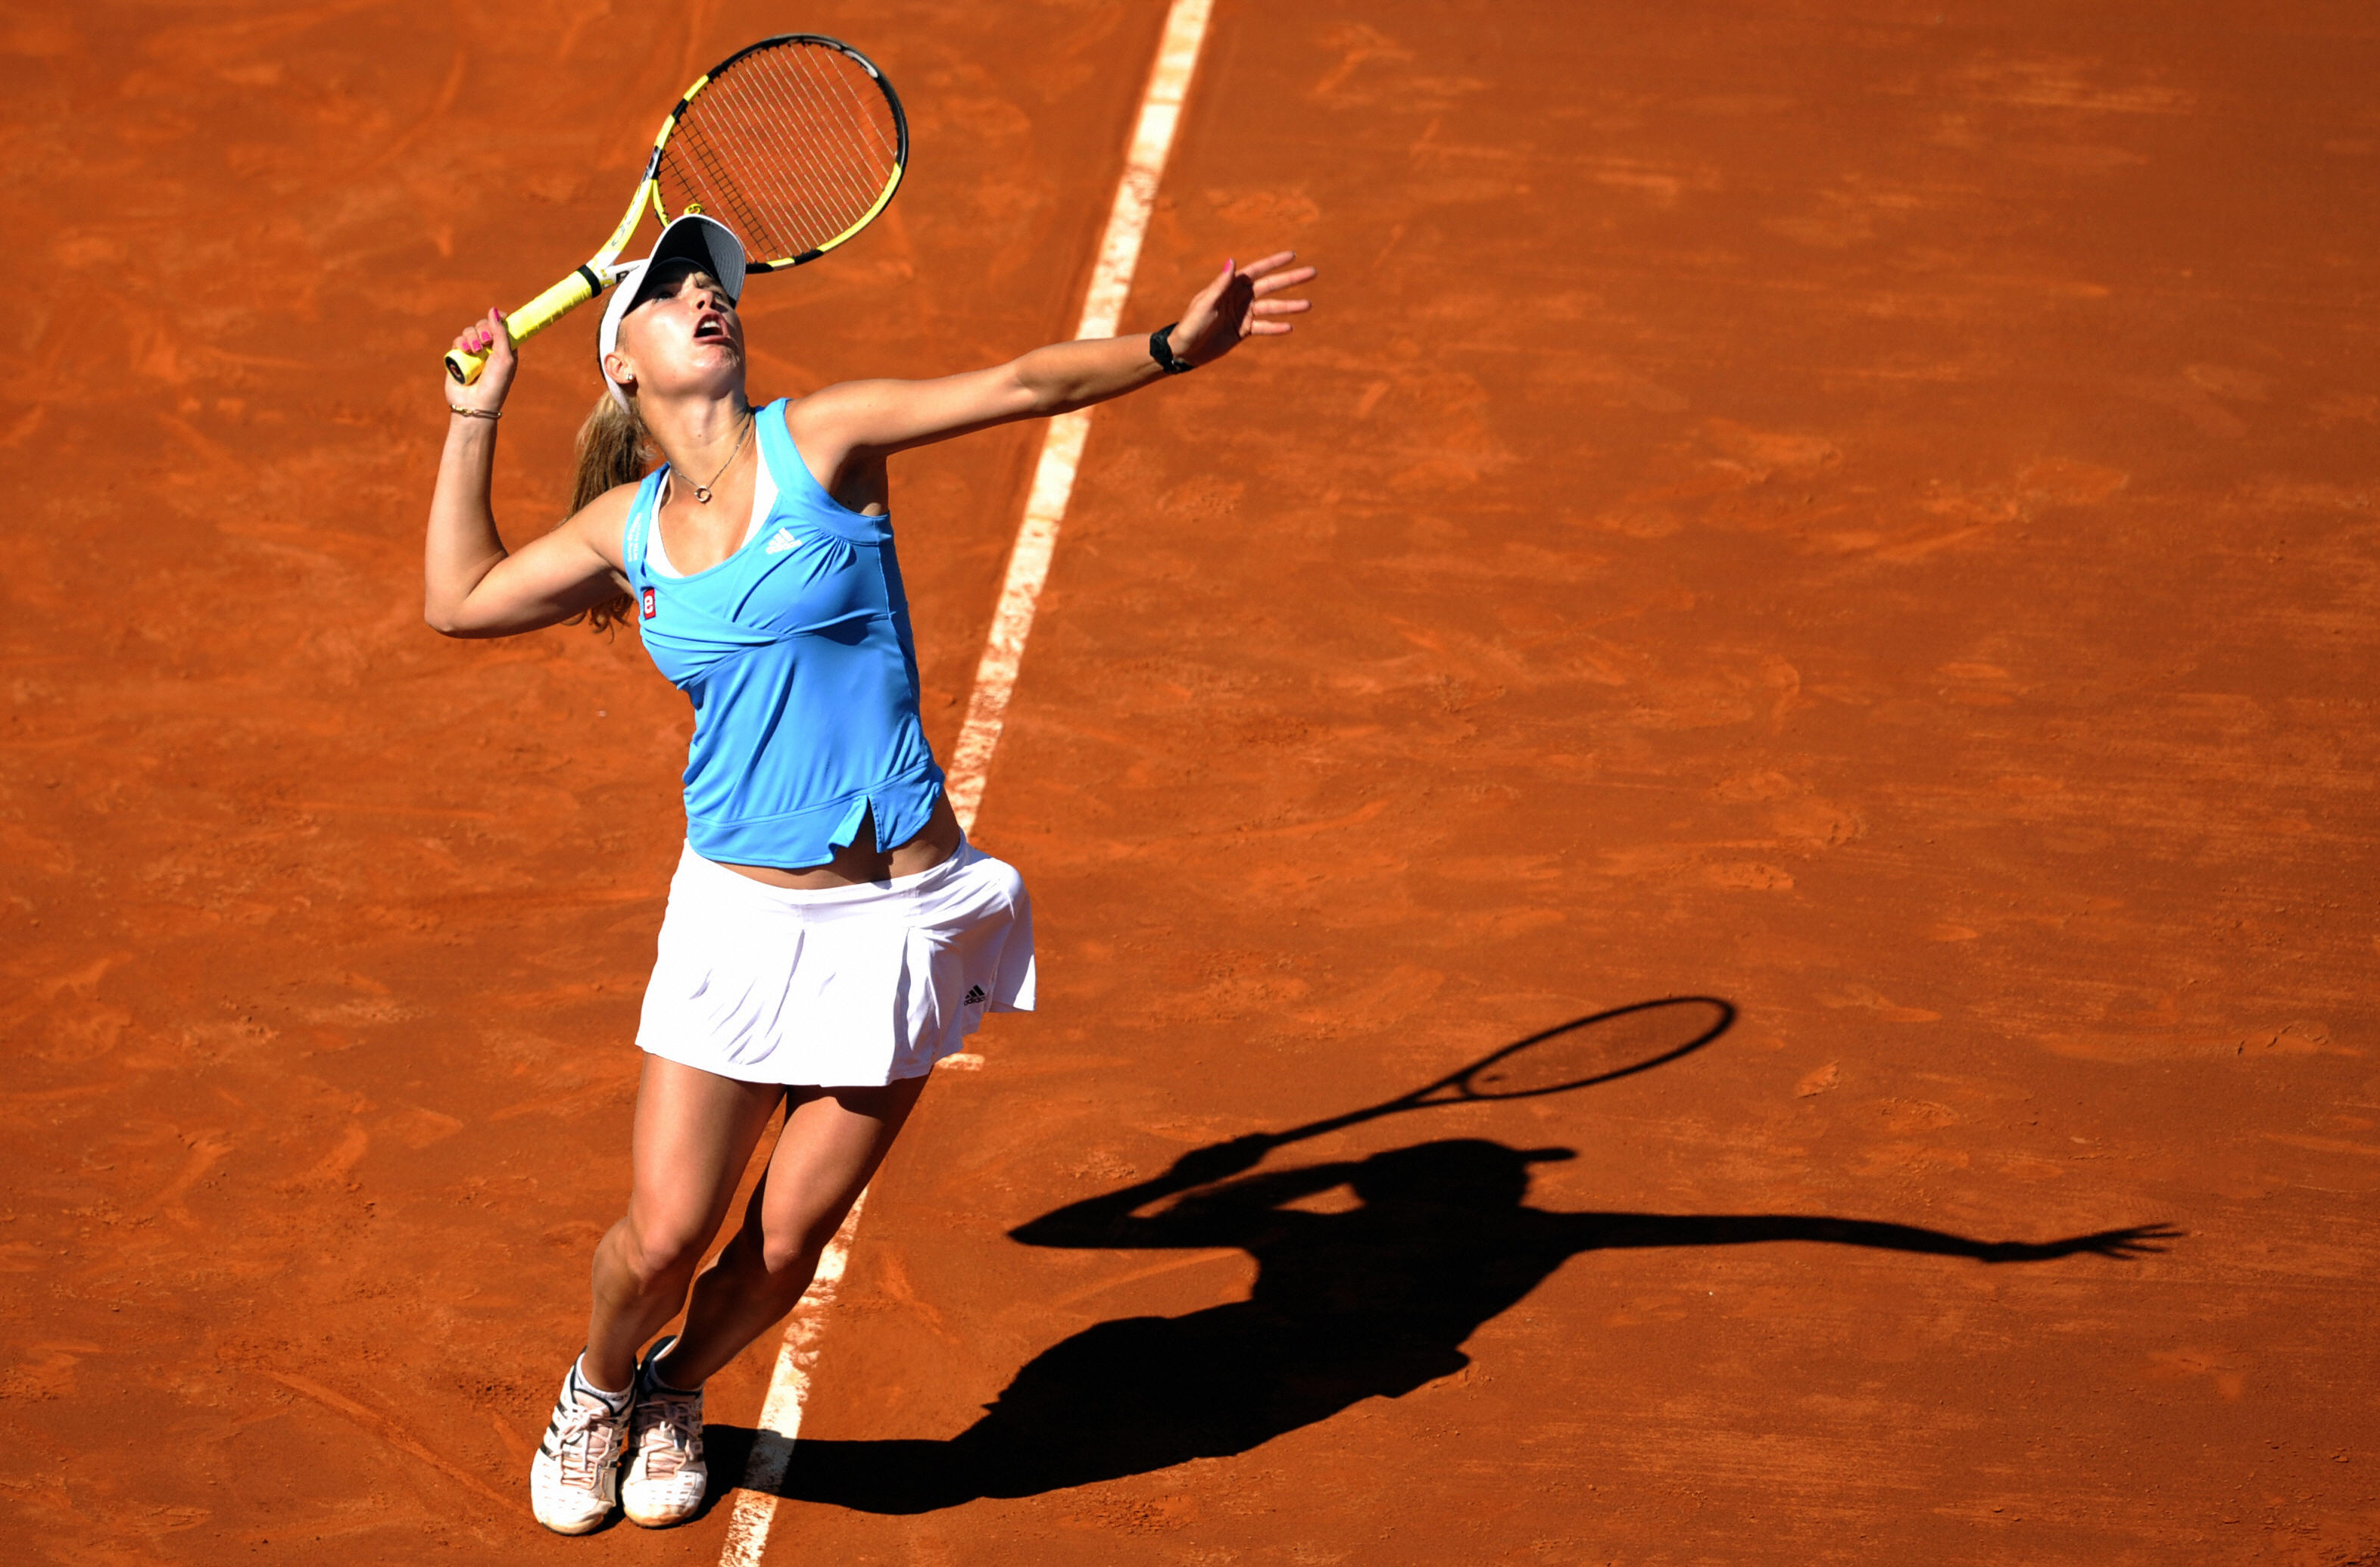 Wozniacki preferred wearing separates over dresses during her early days with Adidas.